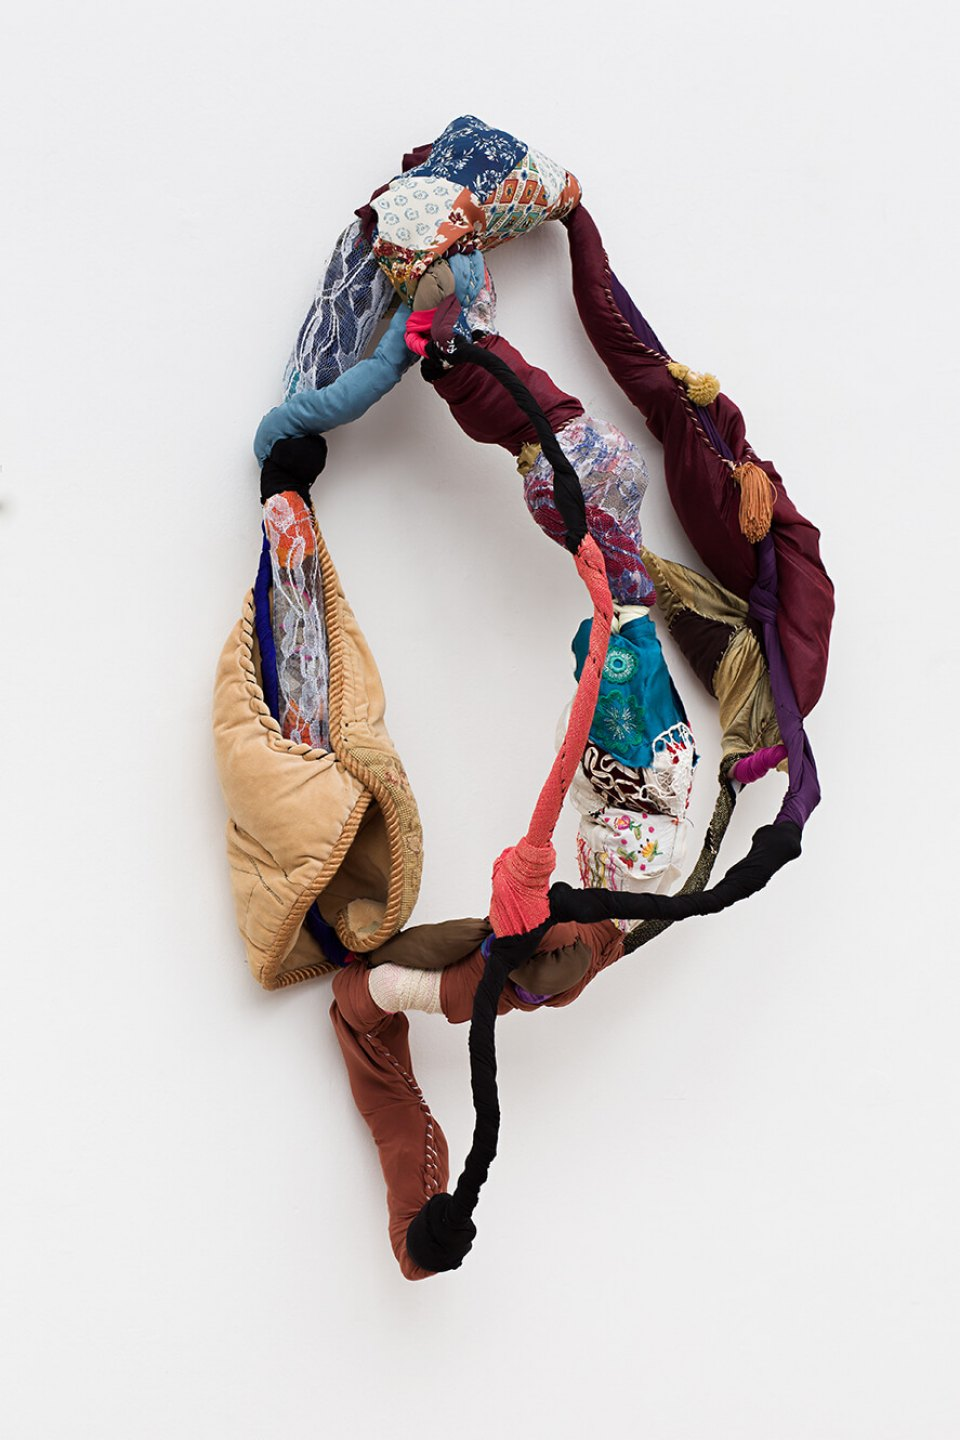 Sonia Gomes,<em>Tórax, from Torção series</em>, 2014, sewing, binding, different fabric on wire, 100 × 60 × 40 cm - Mendes Wood DM